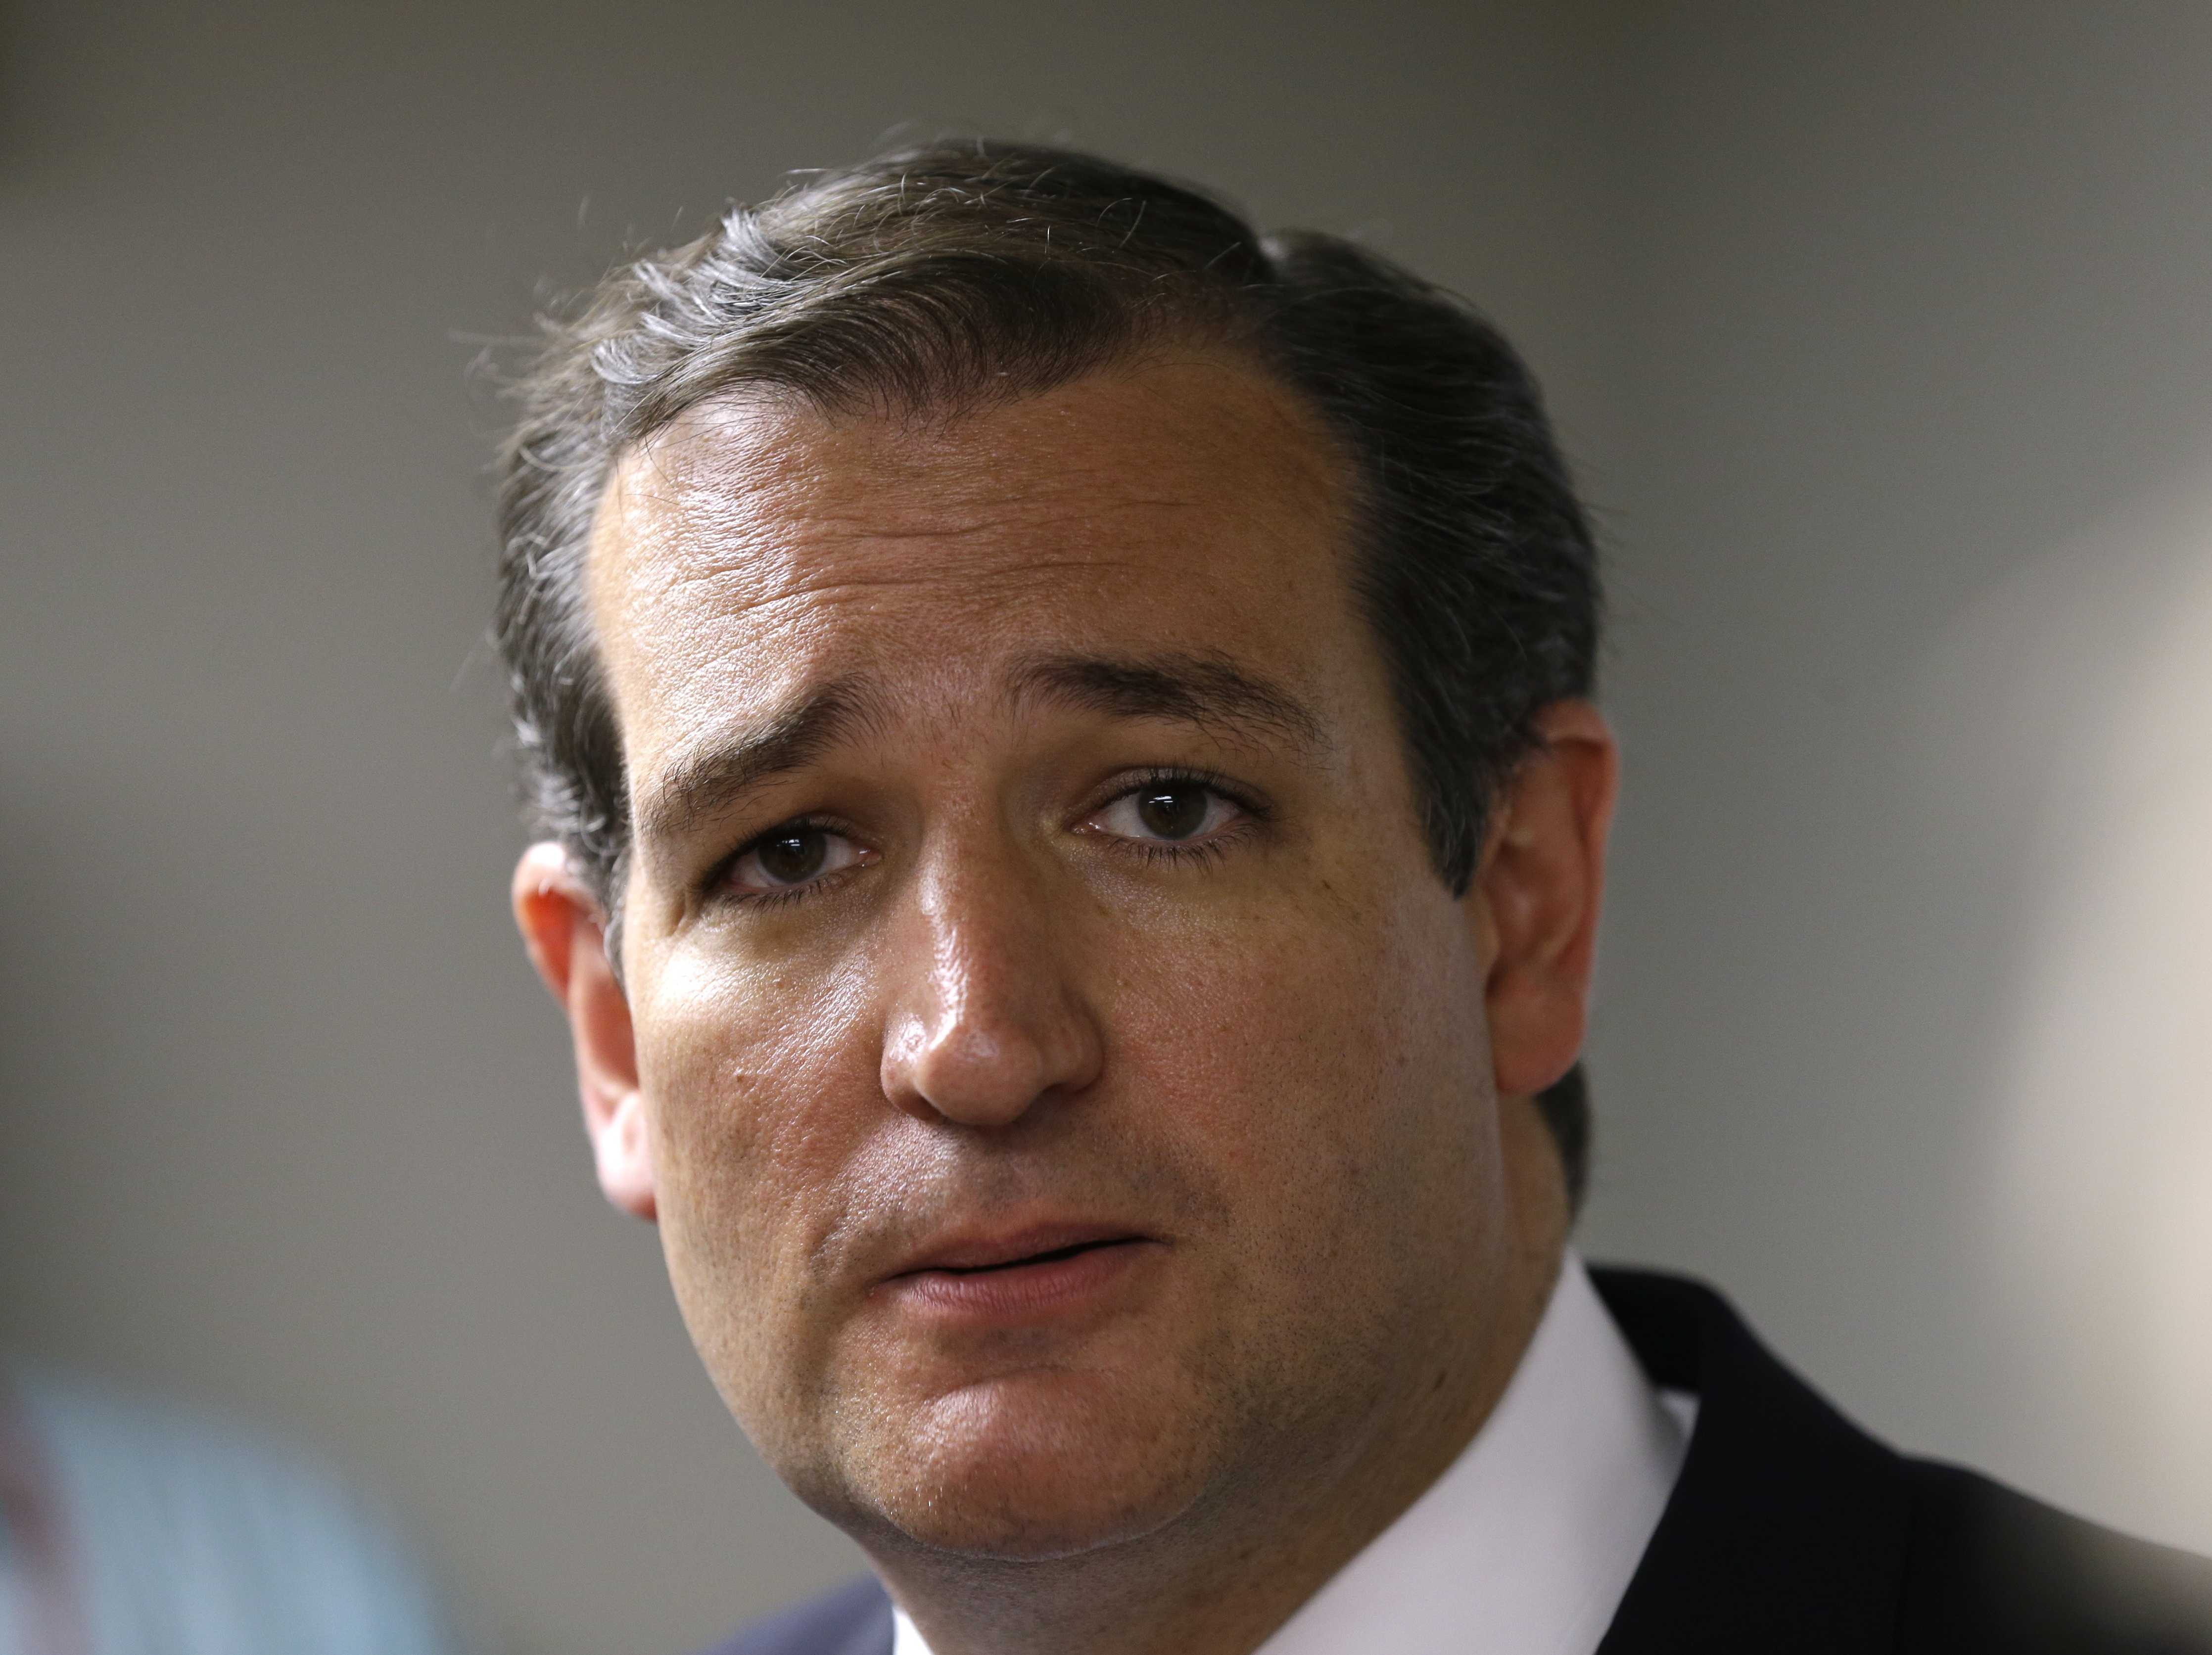 it-looks-like-ted-cruz-is-going-to-filibuster-to-defund-obamacare-after-all.jpg